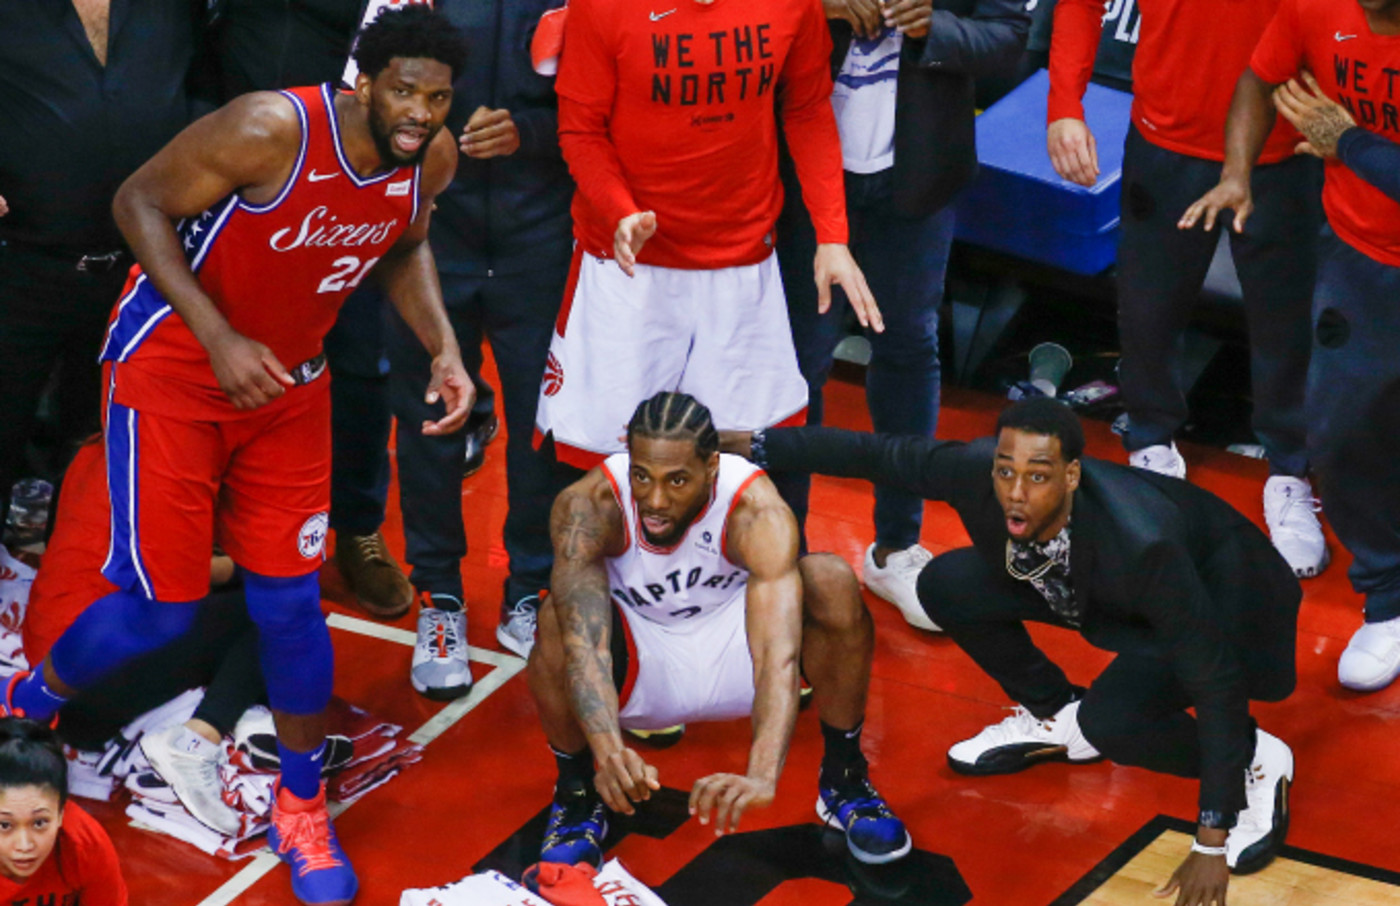 Raptors forward Kawhi Leonard (2) squats down